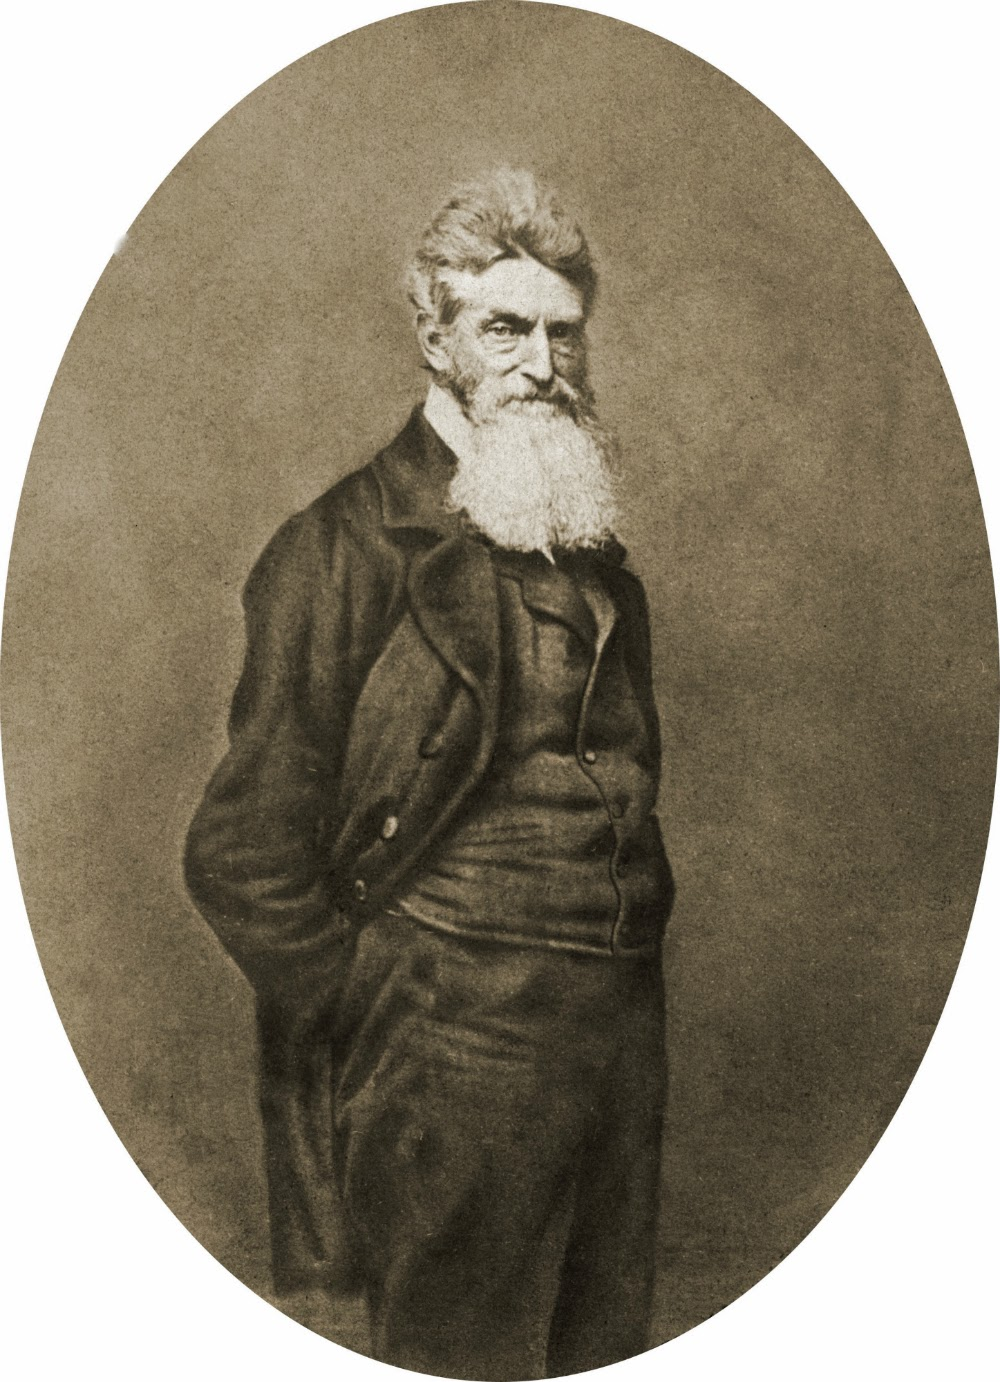 john brown an abolitionist John brown was the most famous, and polarizing, figure to emerge in america in the 1850's, with the exception of abraham lincoln brown came to personalize the violence which was overcoming the national dialogue over slavery at the time.